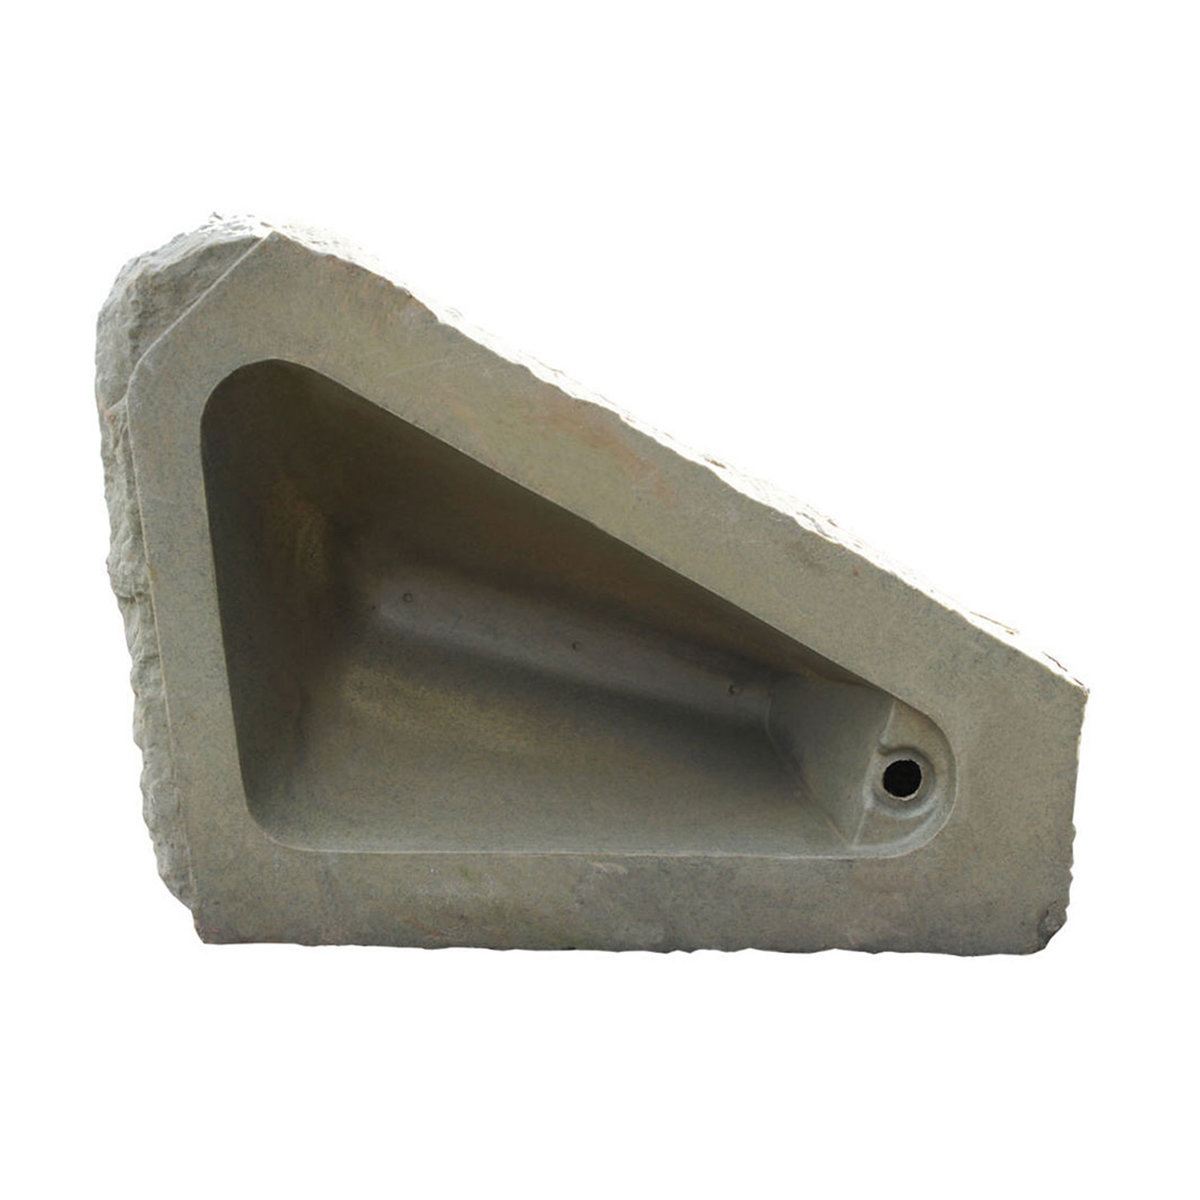 Rts Home Accents Right Triangle Landscaping Rock Oak Armor Stone